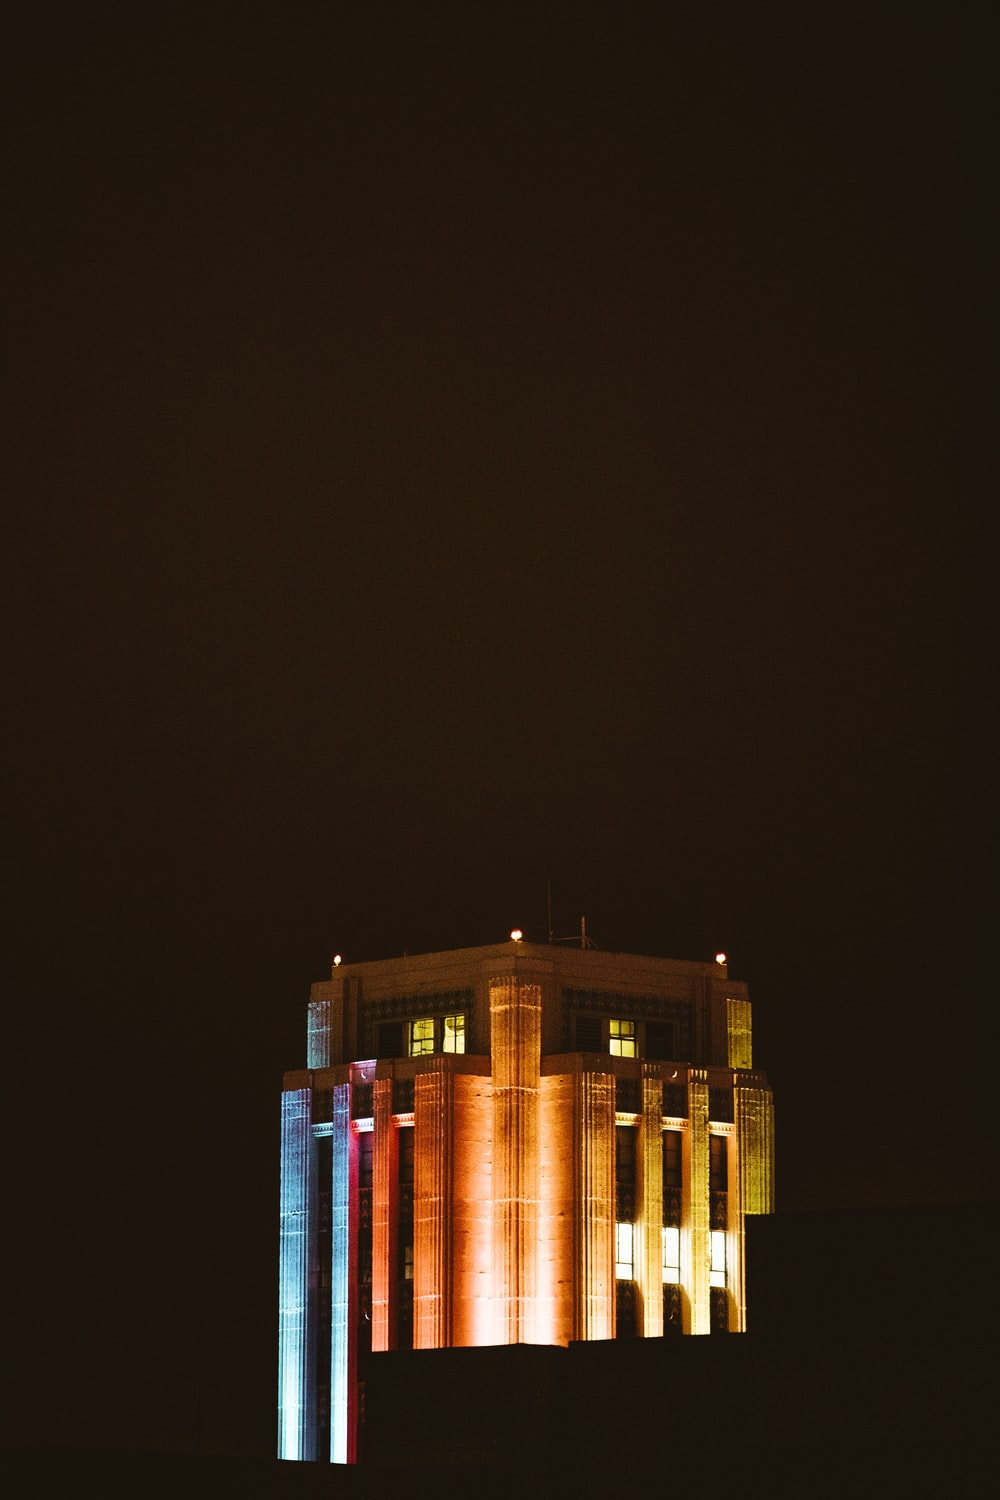 brown building at night